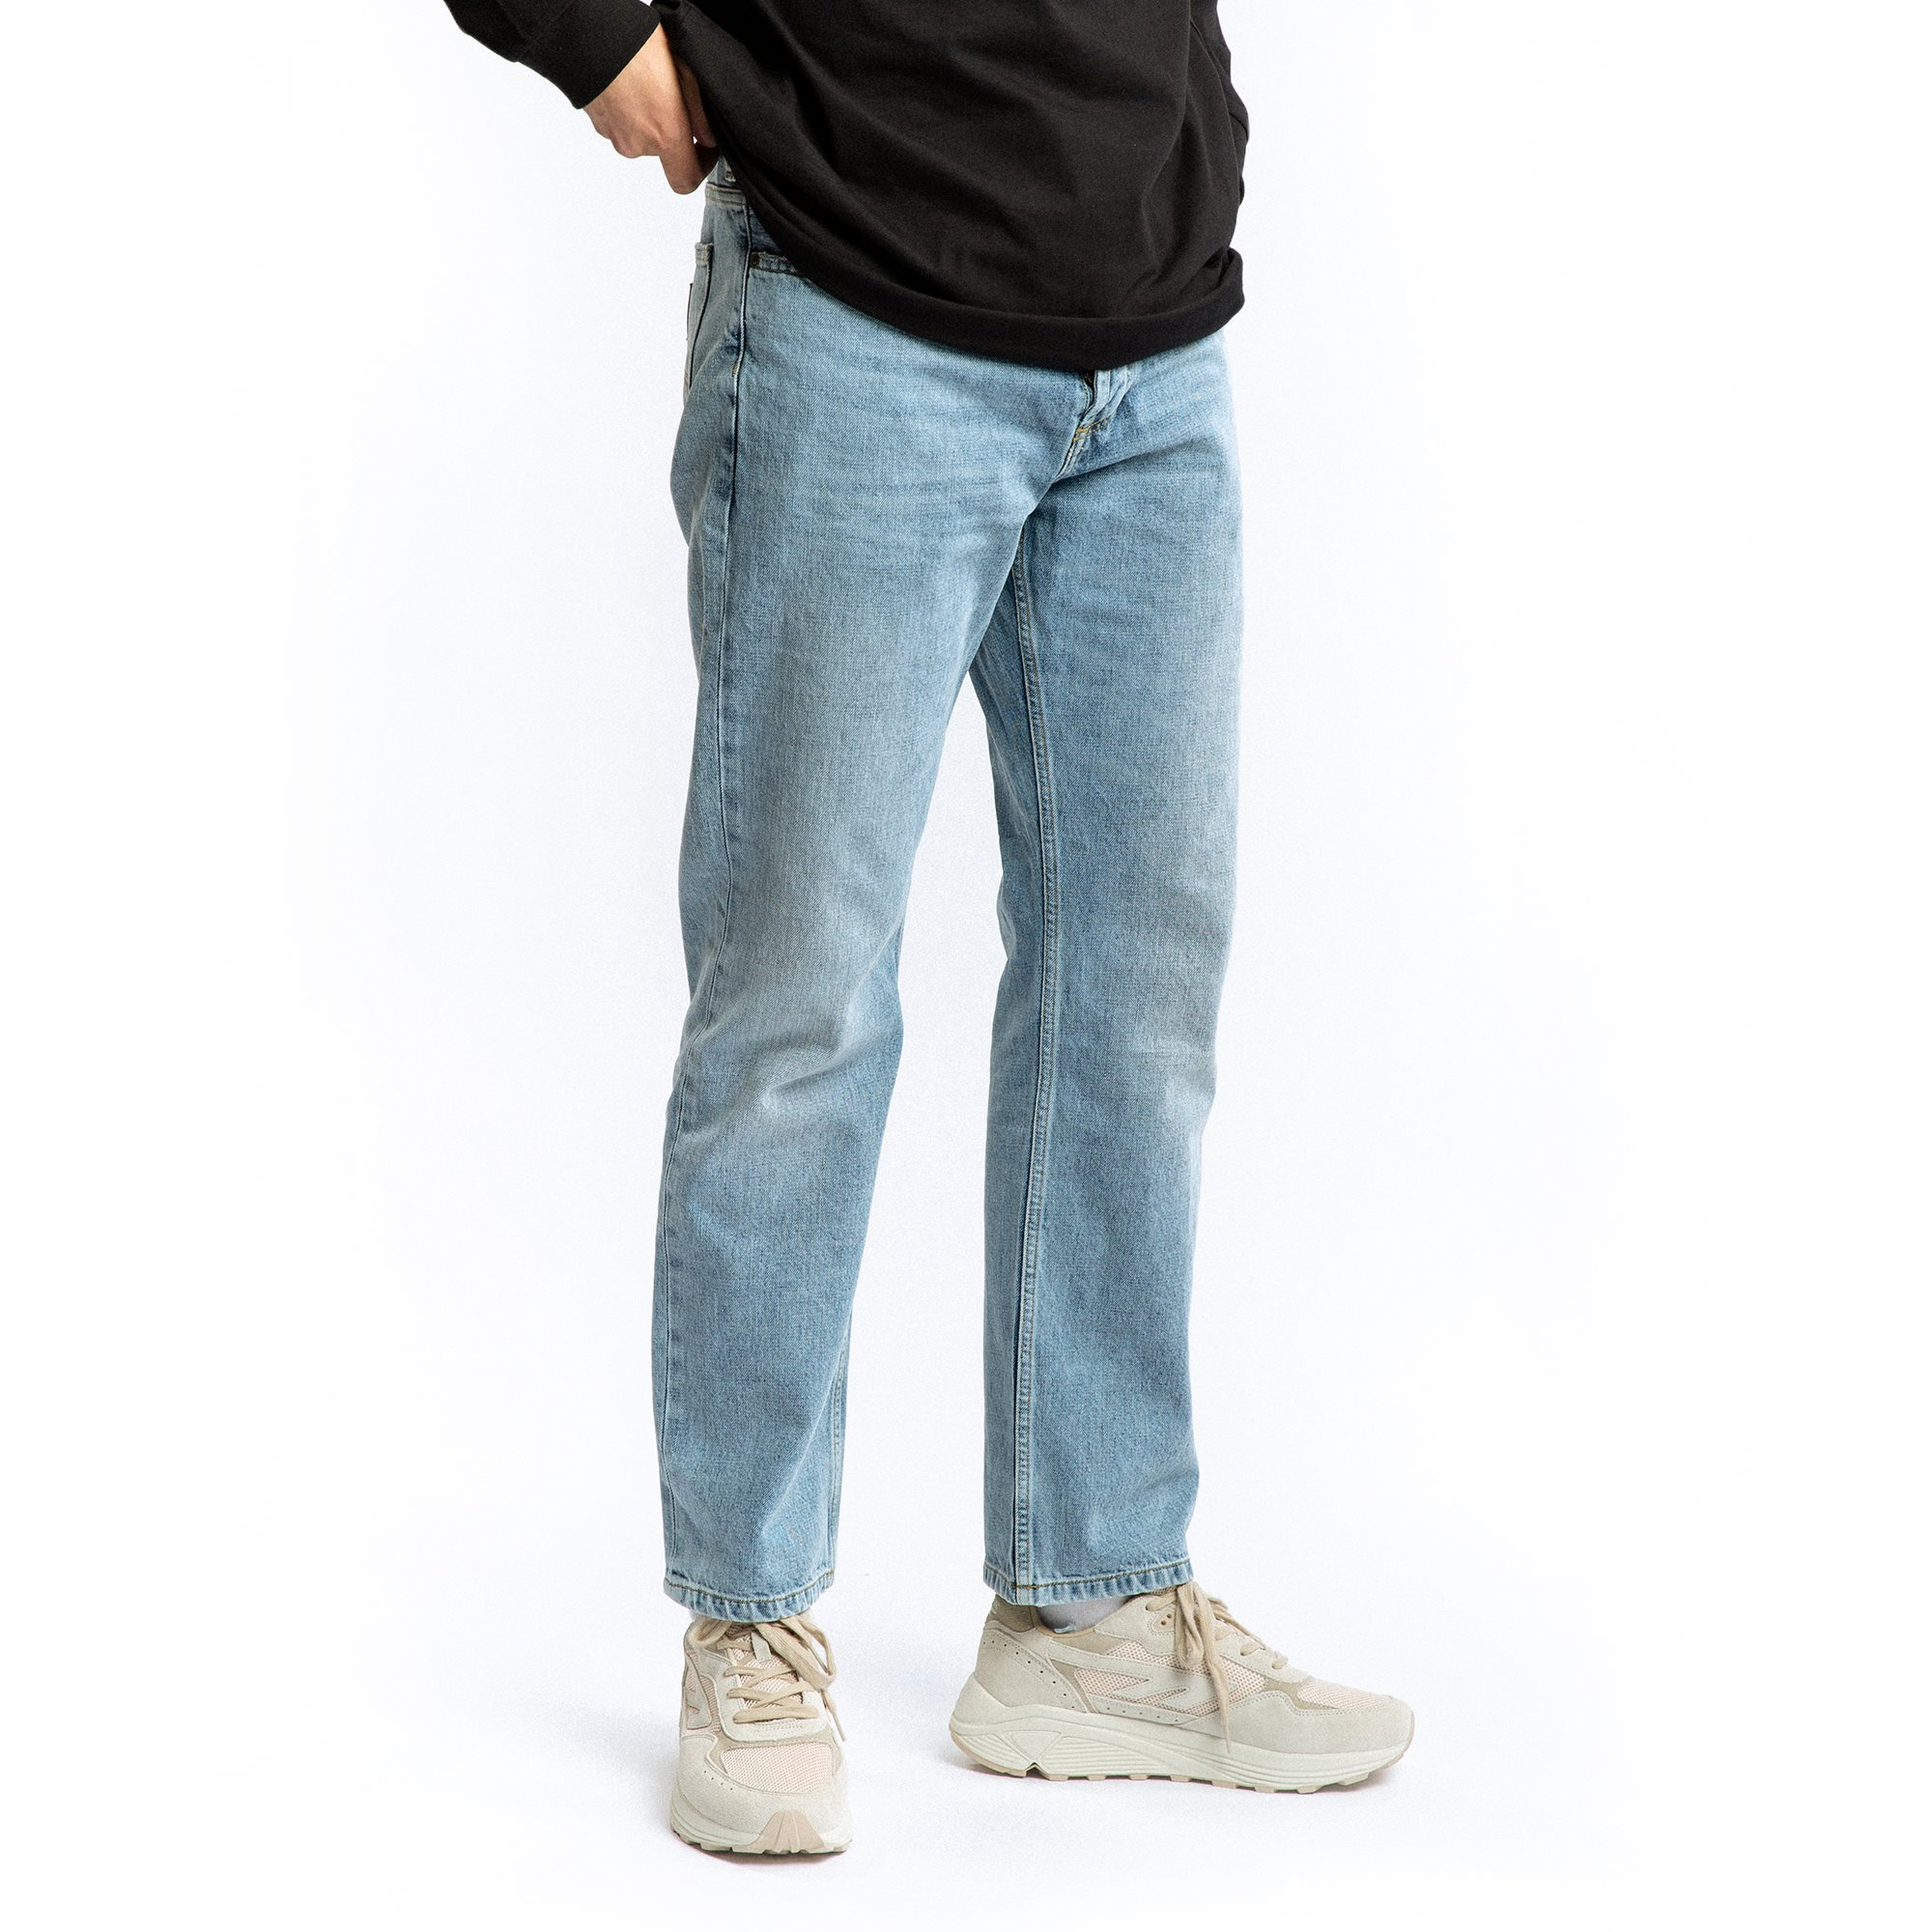 Jeans - Relaxed fit - Denim